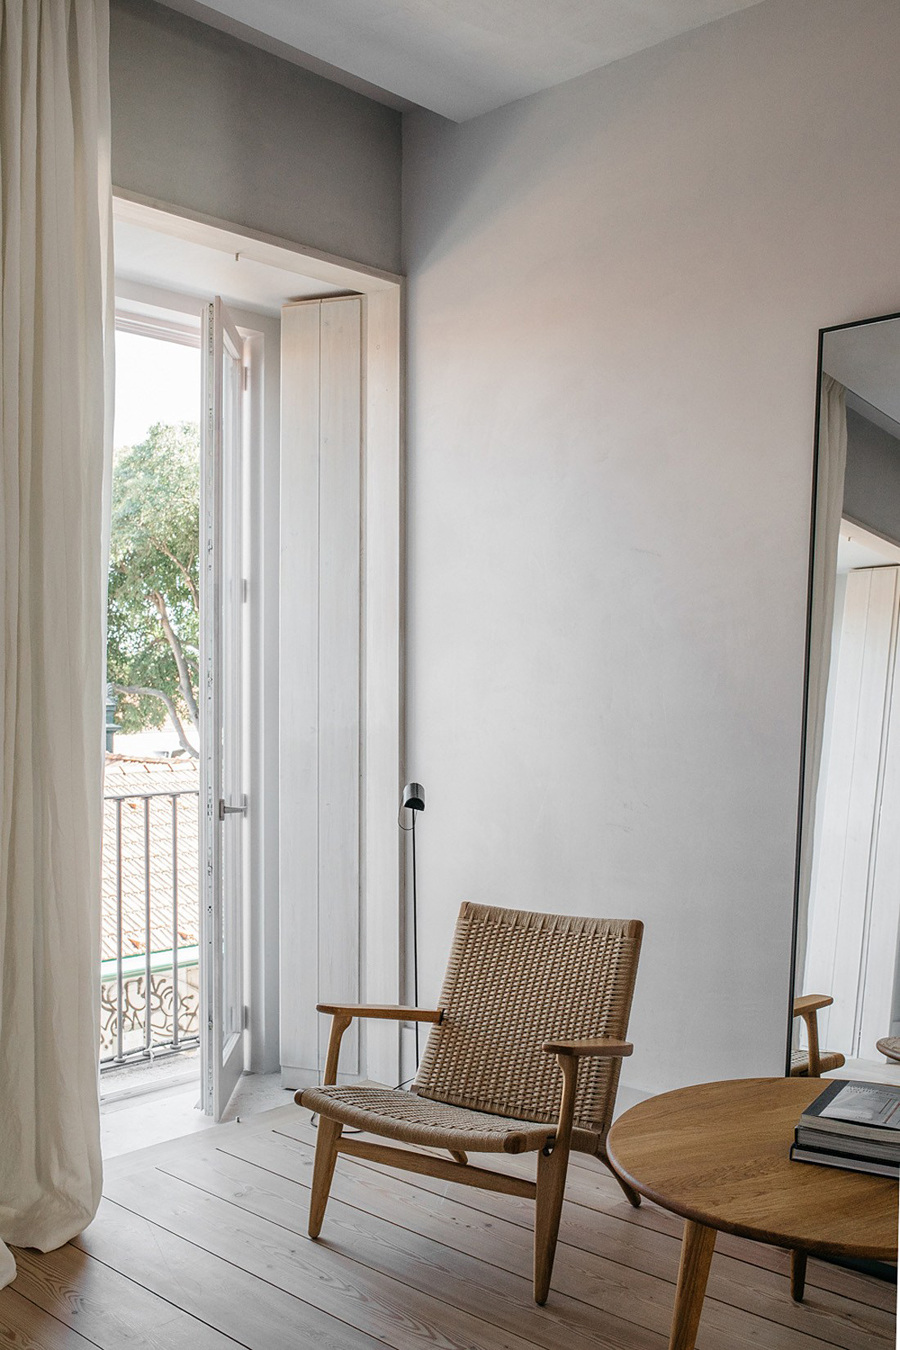 J.Wagner chair for Carl Hansen, rattan armchair, dinning area, hotel design, santa clara hotel, lisbon hotel, interior design, bedroom, suite